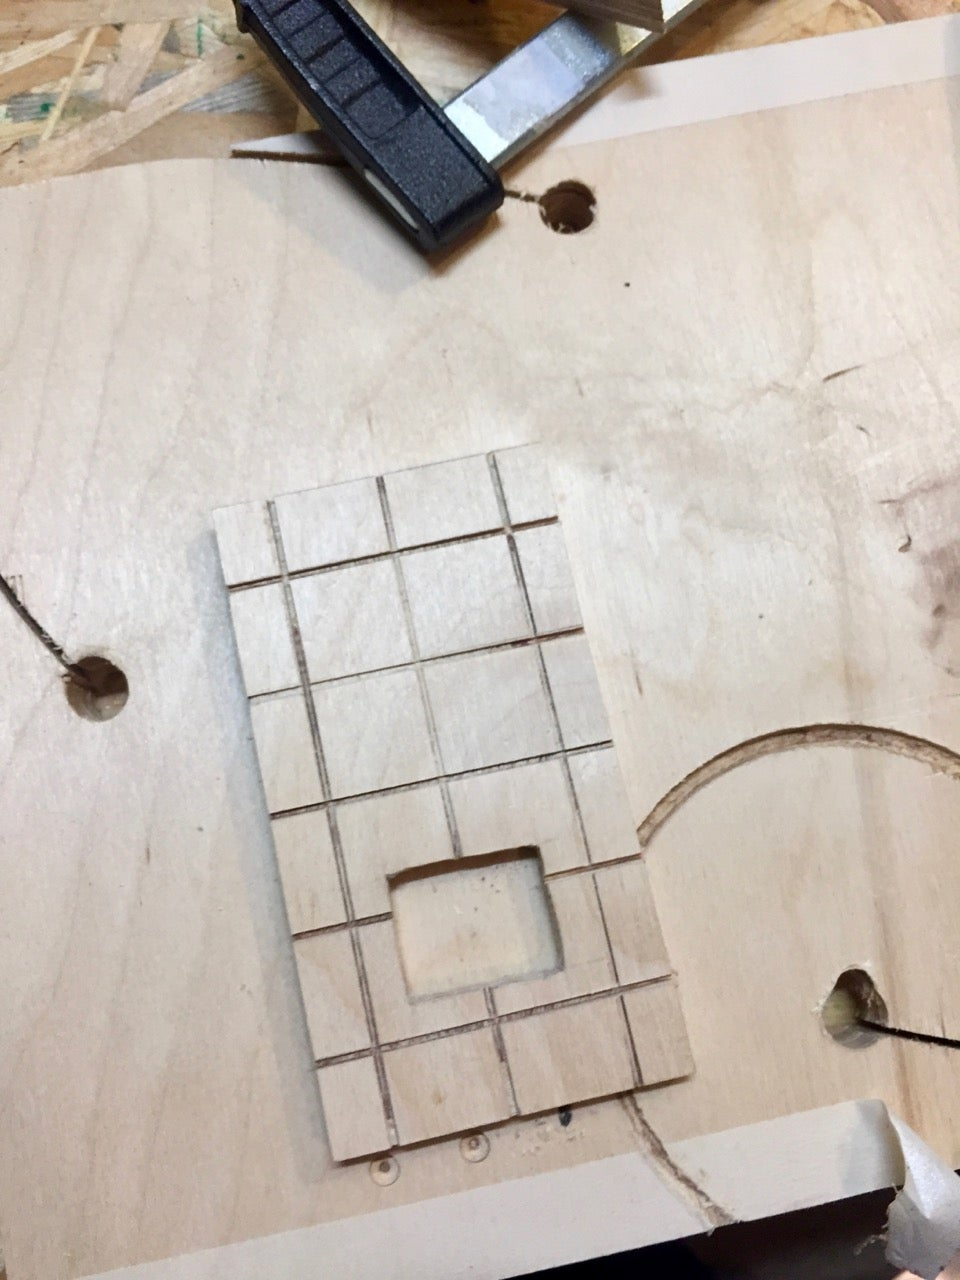 The Oven Body - Shaping the Tiles